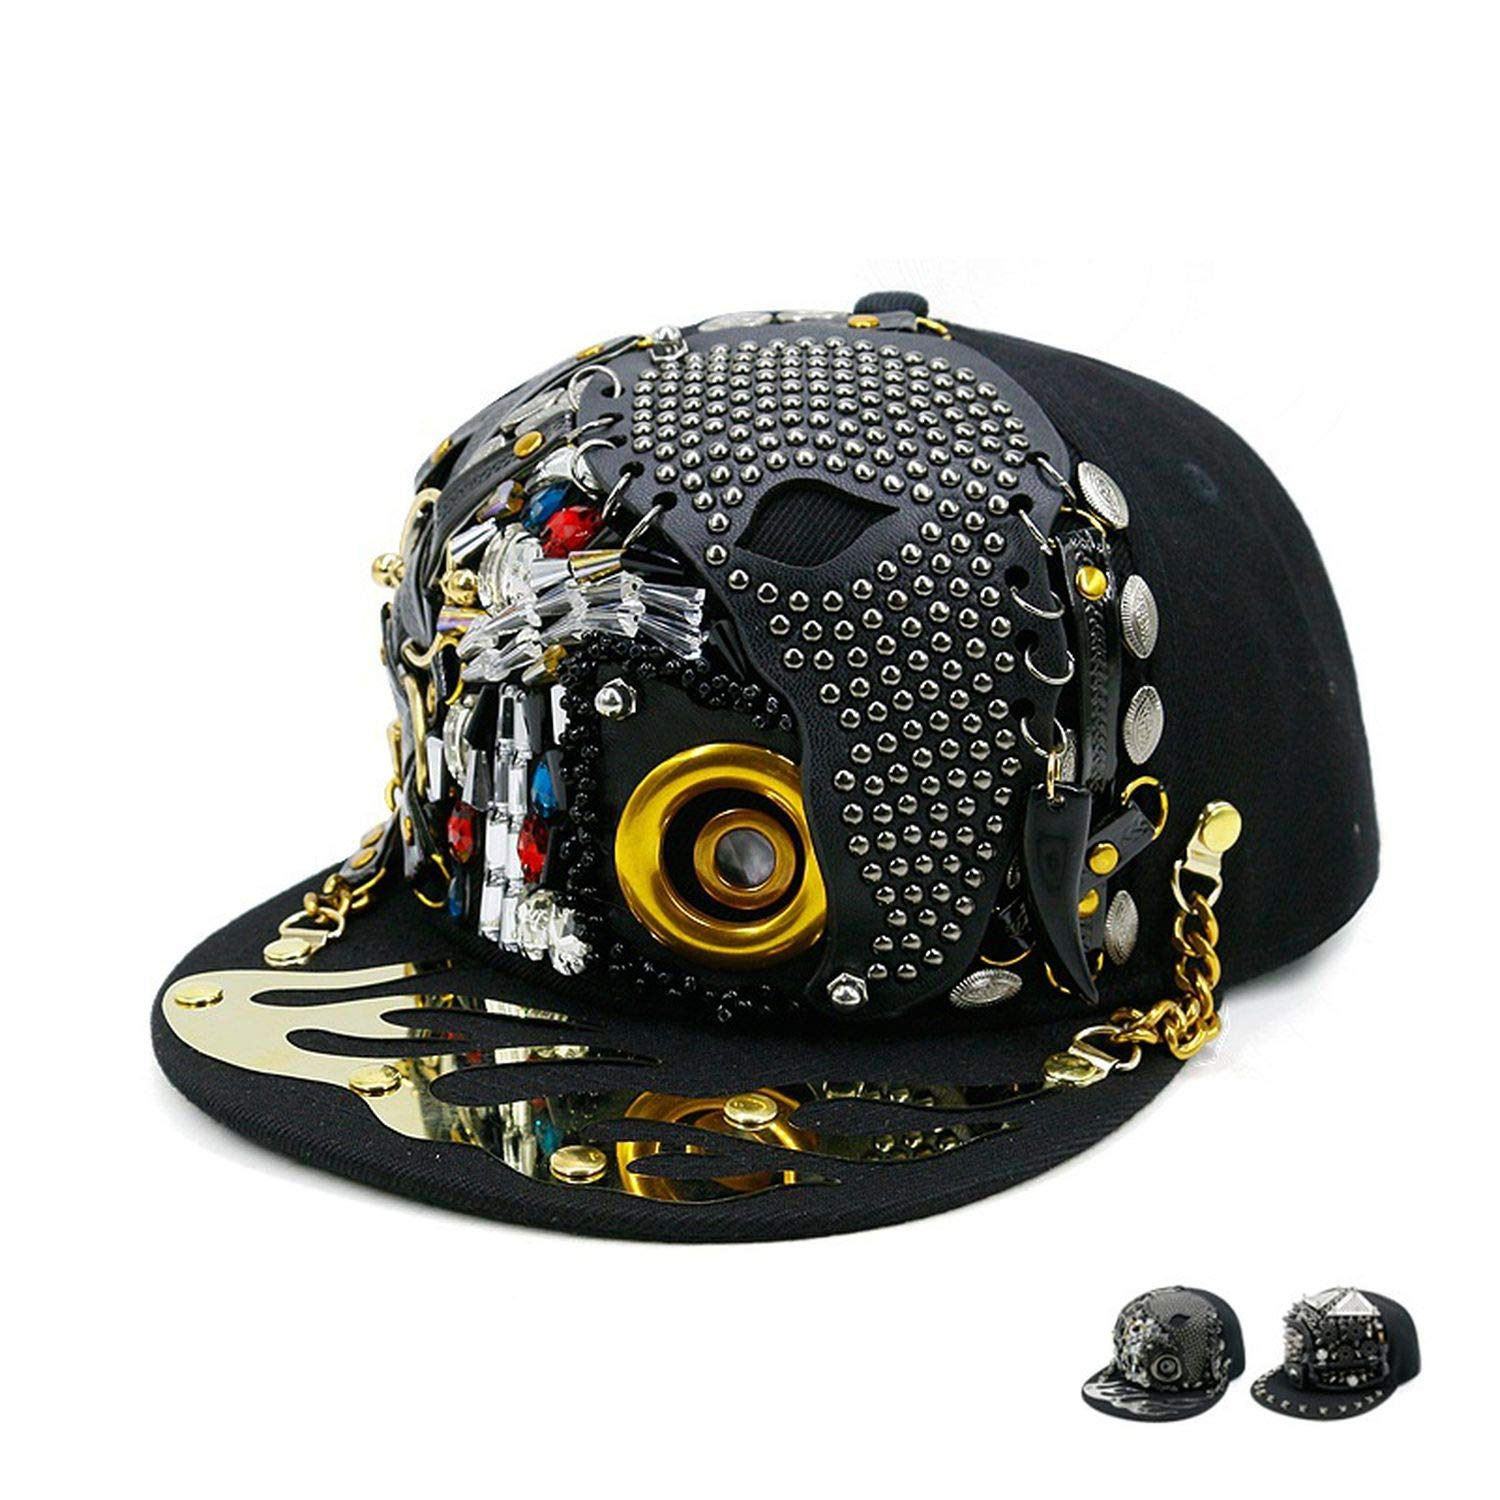 401906a9e38da Amazon.com  Hip Hop Caps Men Women Steampunk Baseball Caps Shows Luxury  Design Flat Bone Snapbacks Punk Hiphop Novelty